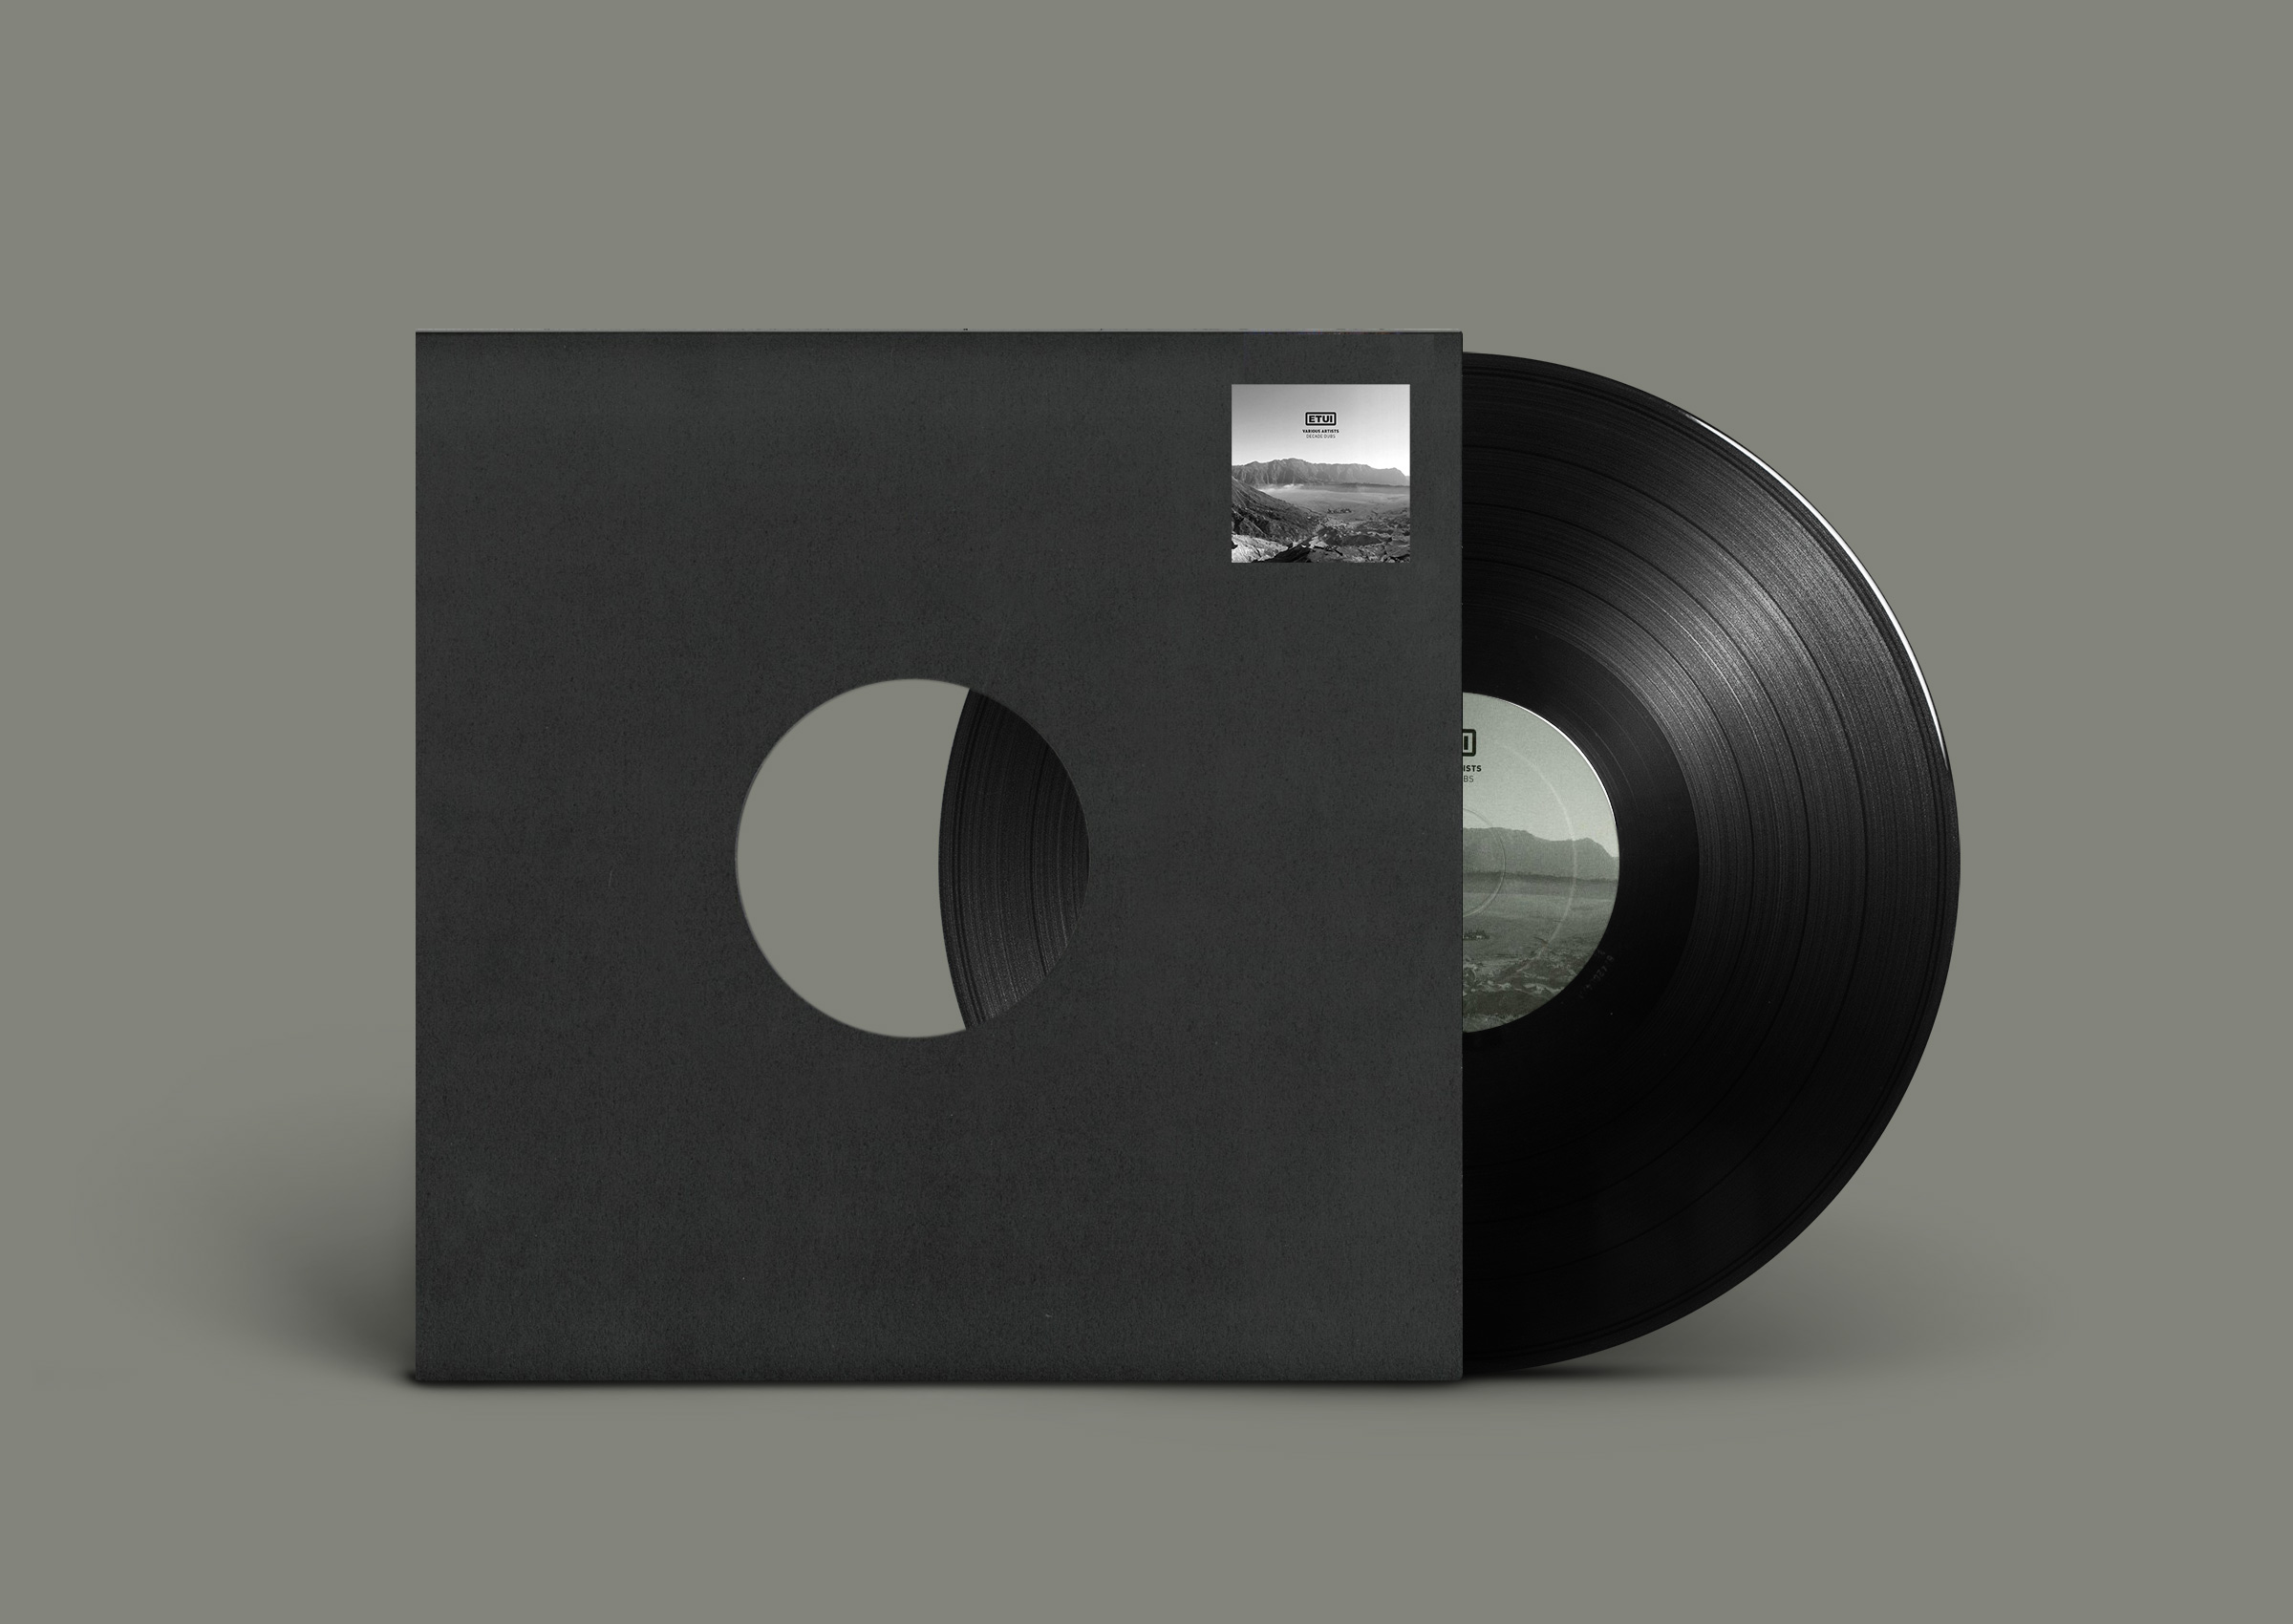 V.A. - Decade Dubs - Black Vinyl Edition